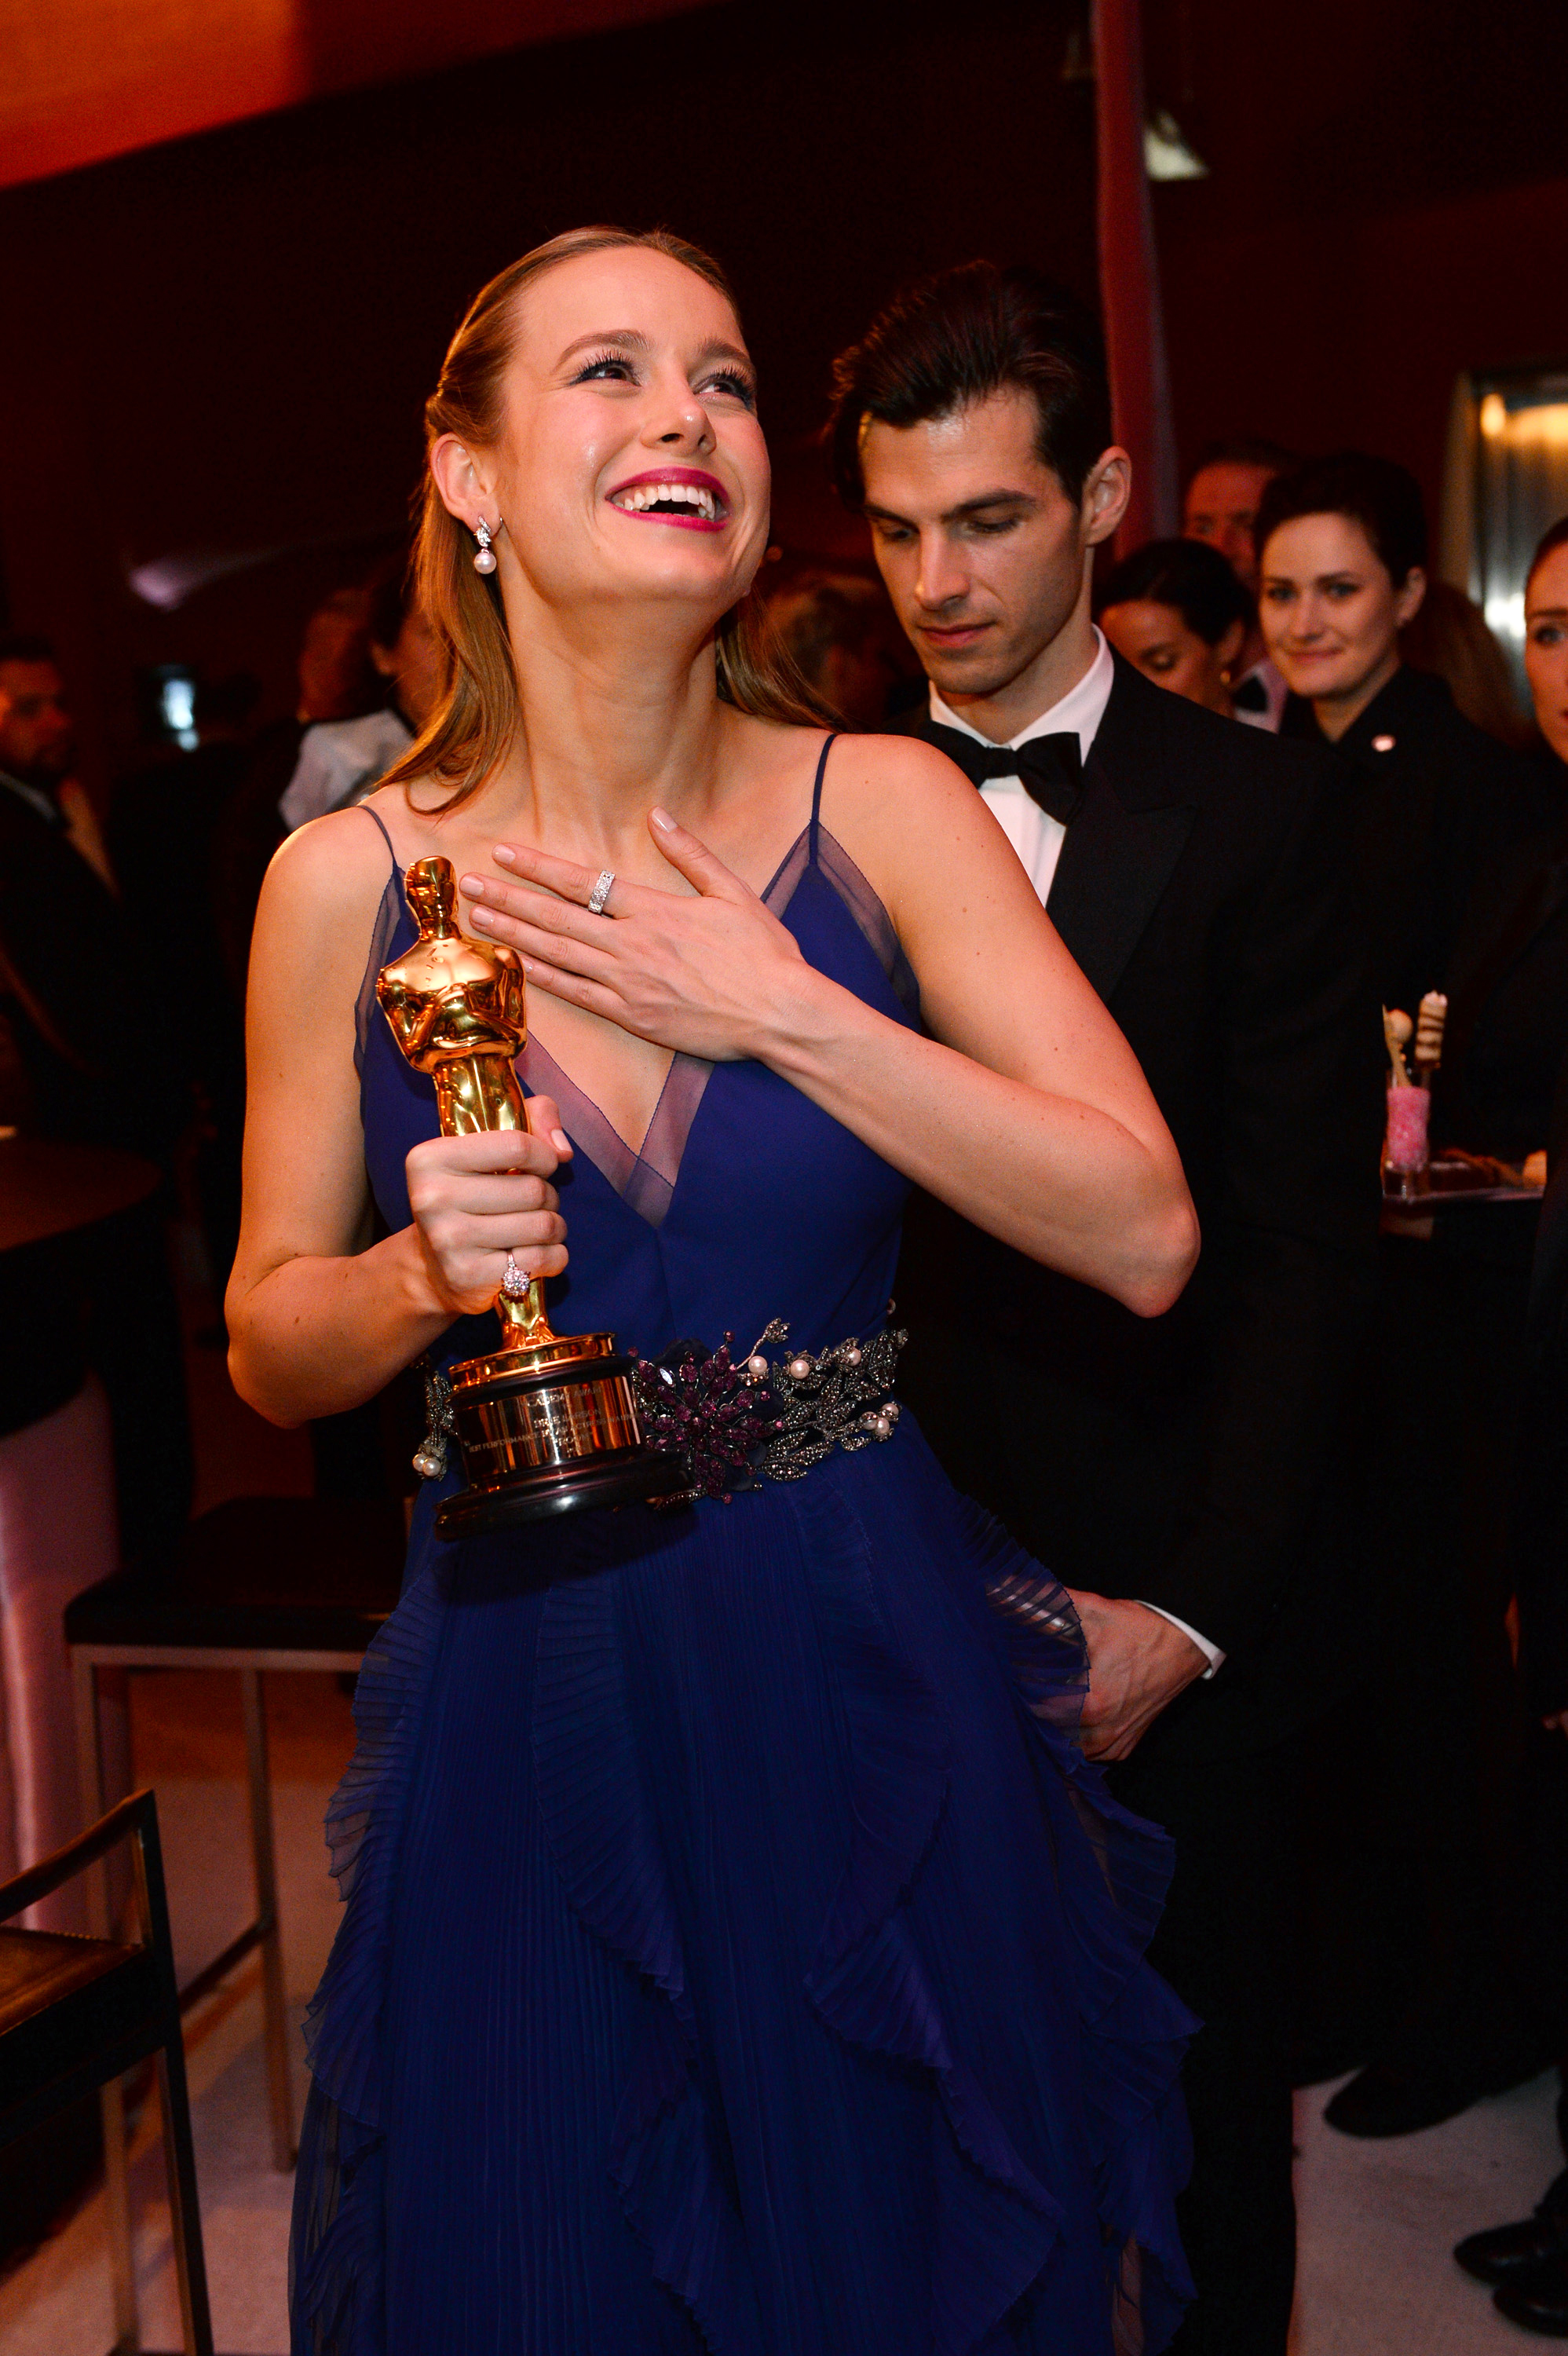 Oscar winners party it up at vanity fair governors ball for Oscar awards winning movies